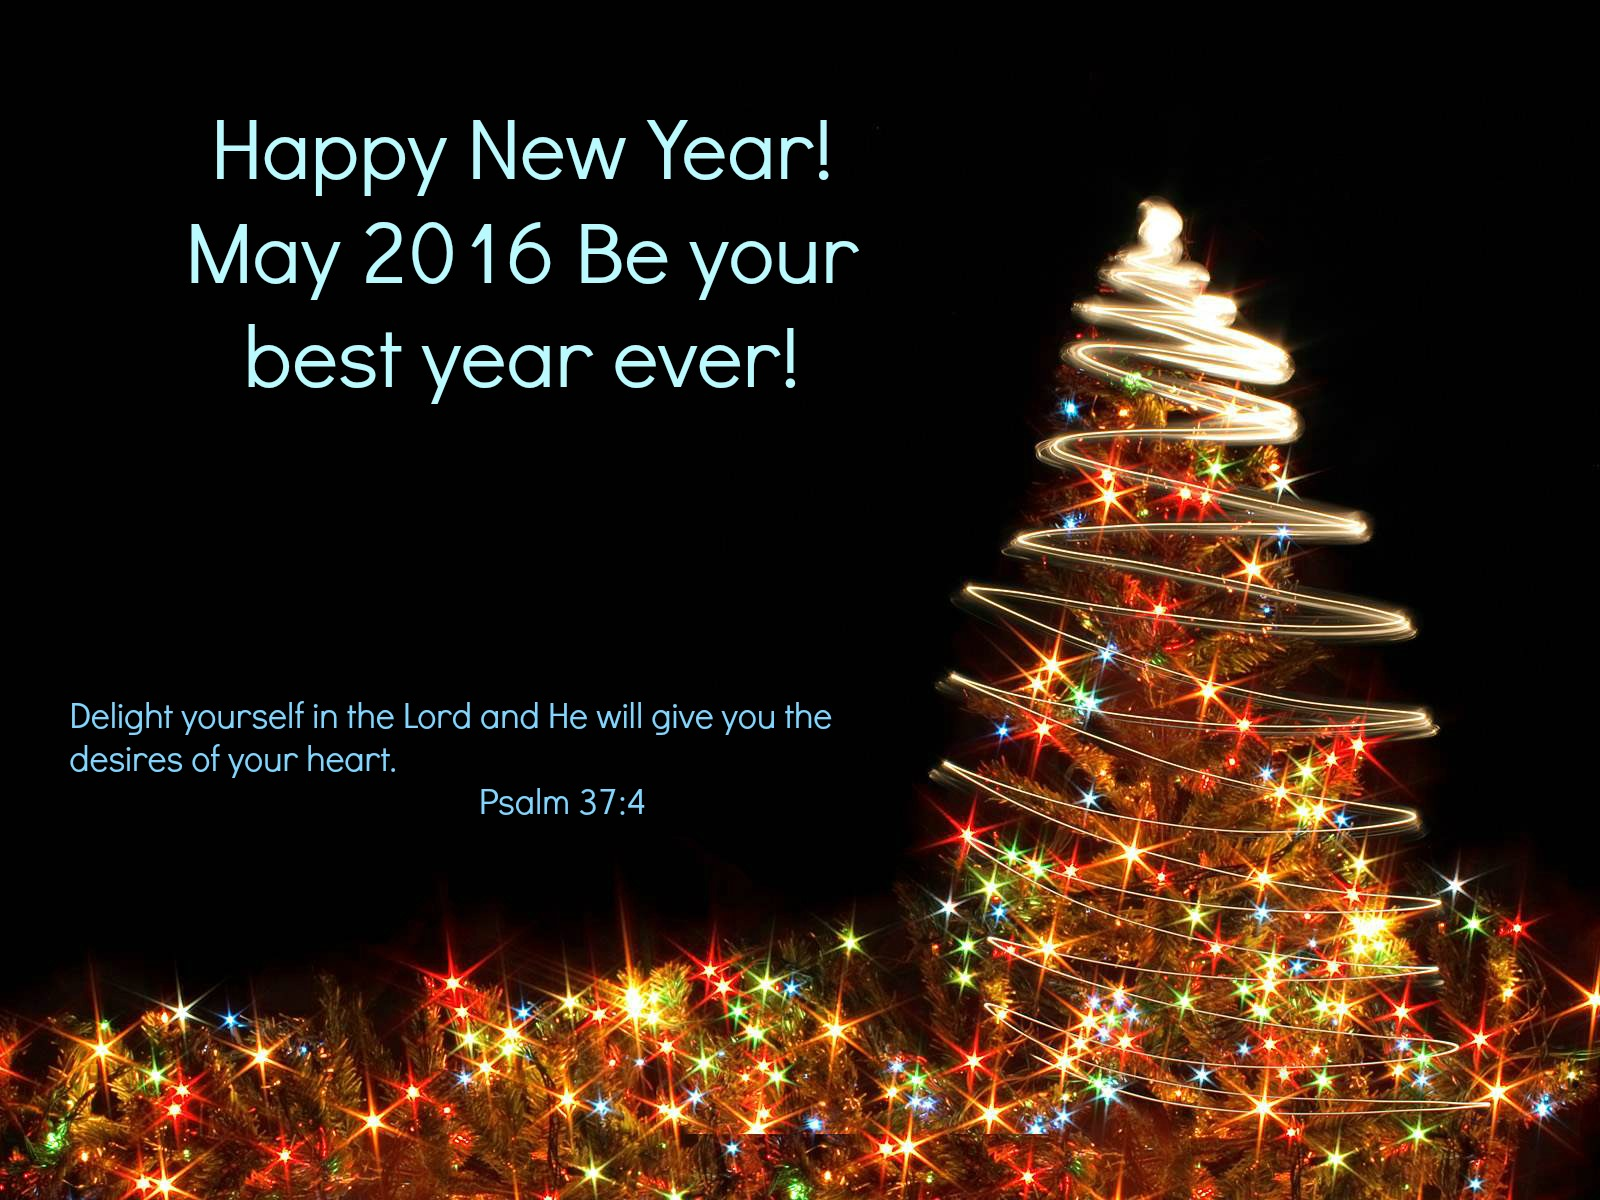 2016 Happy New Yeat